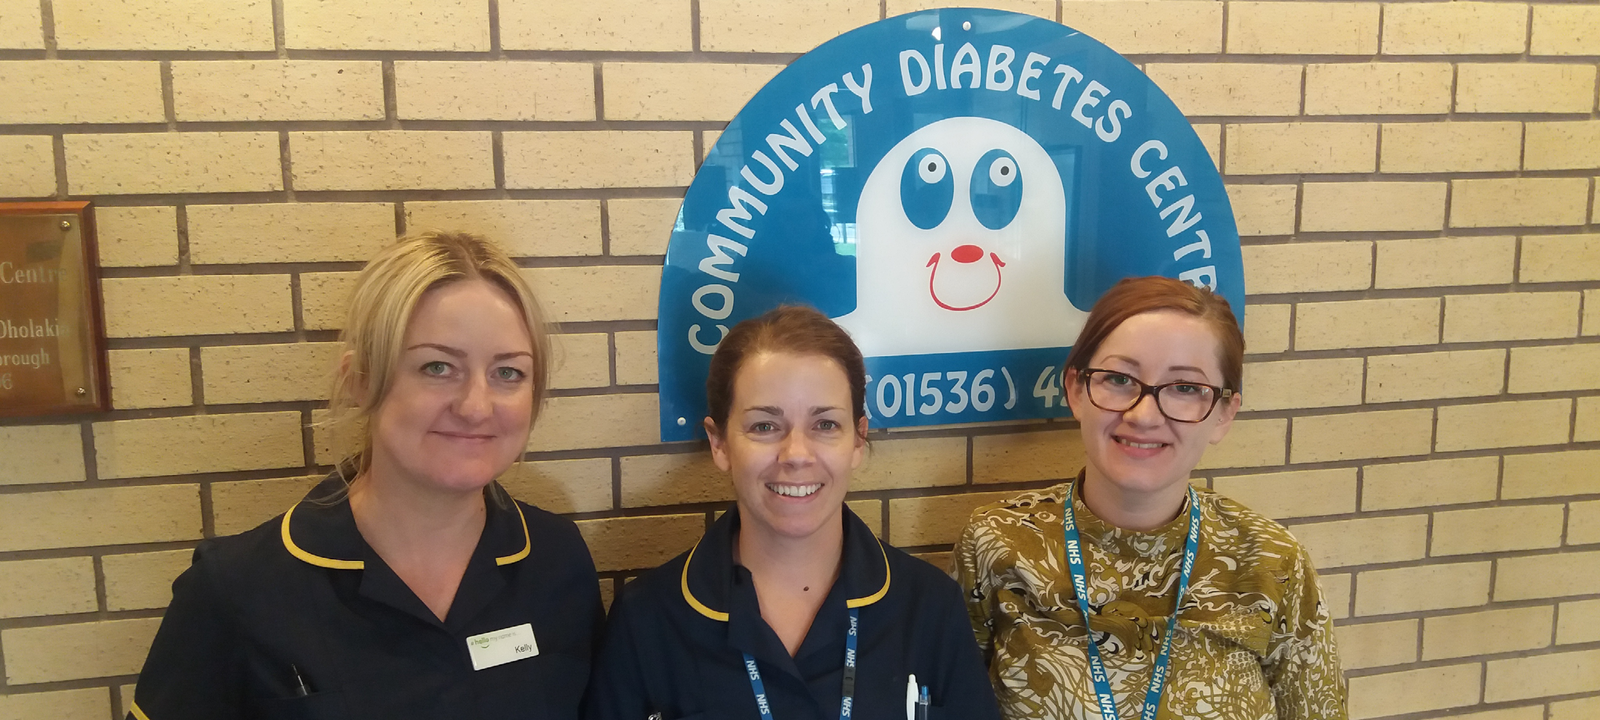 A photo of the NHFT Diabetes Team